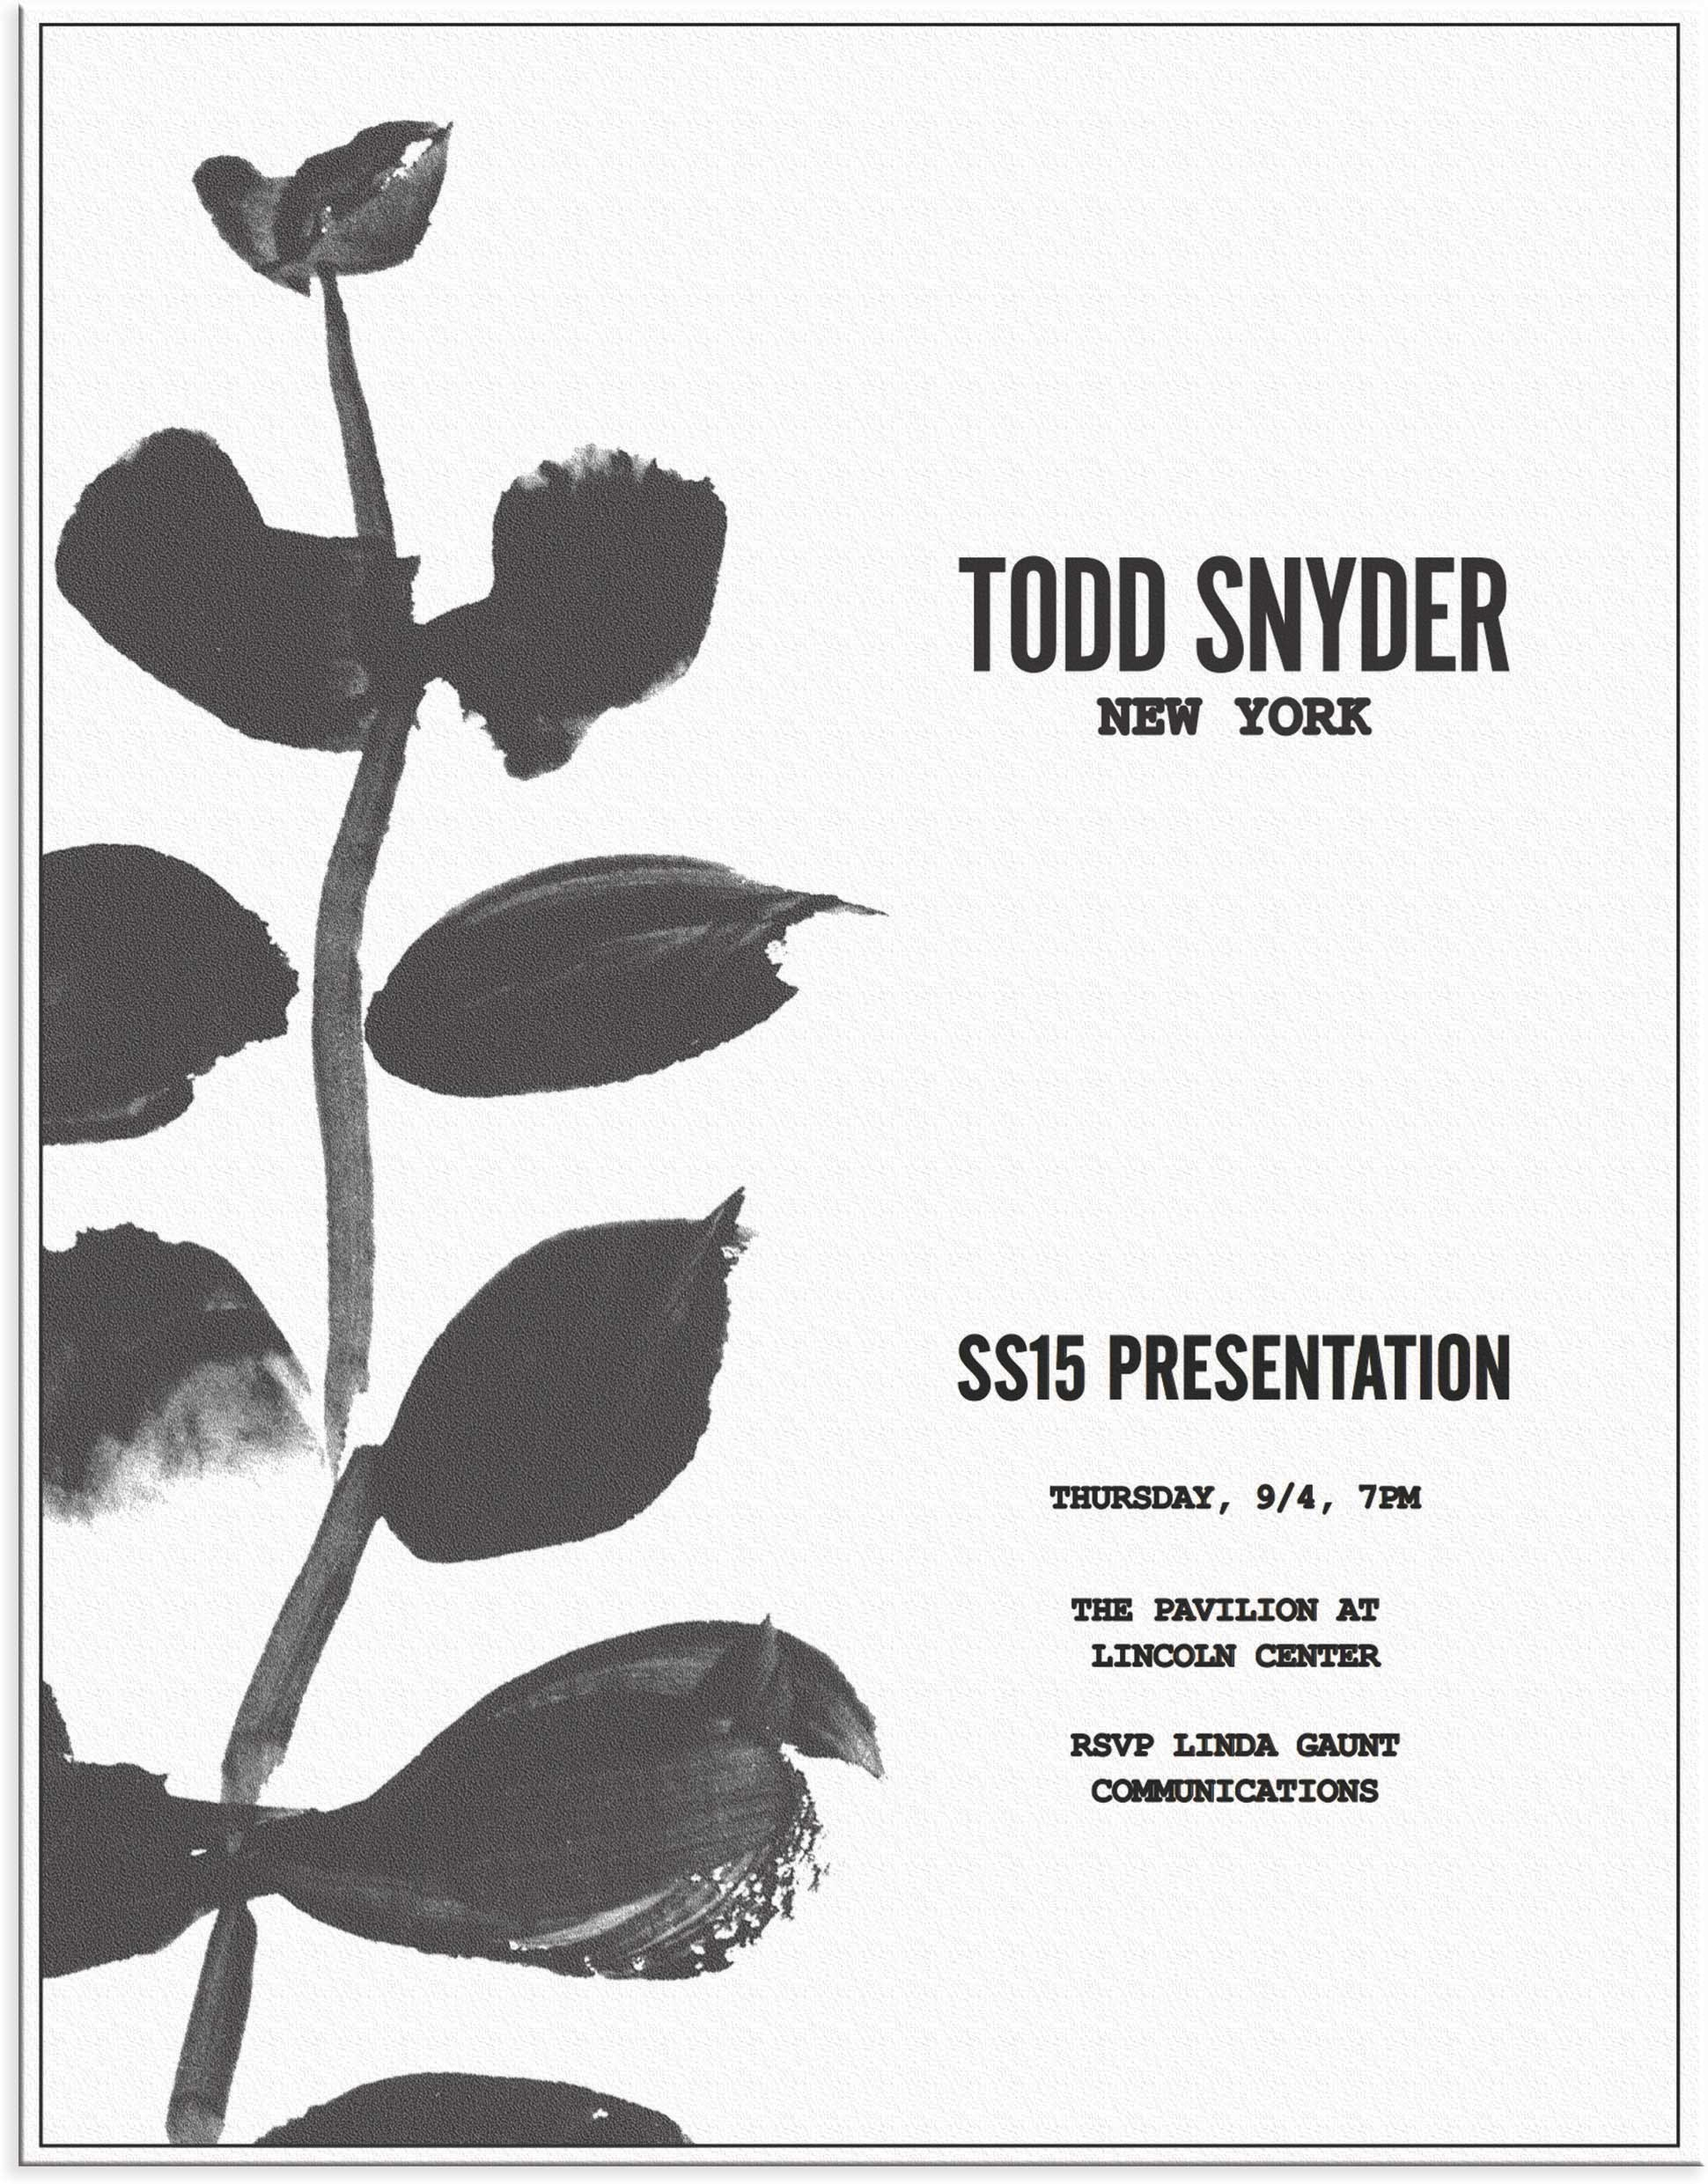 Painting Invitation Design Export for Print  Todd Snyder SS15 NYFW